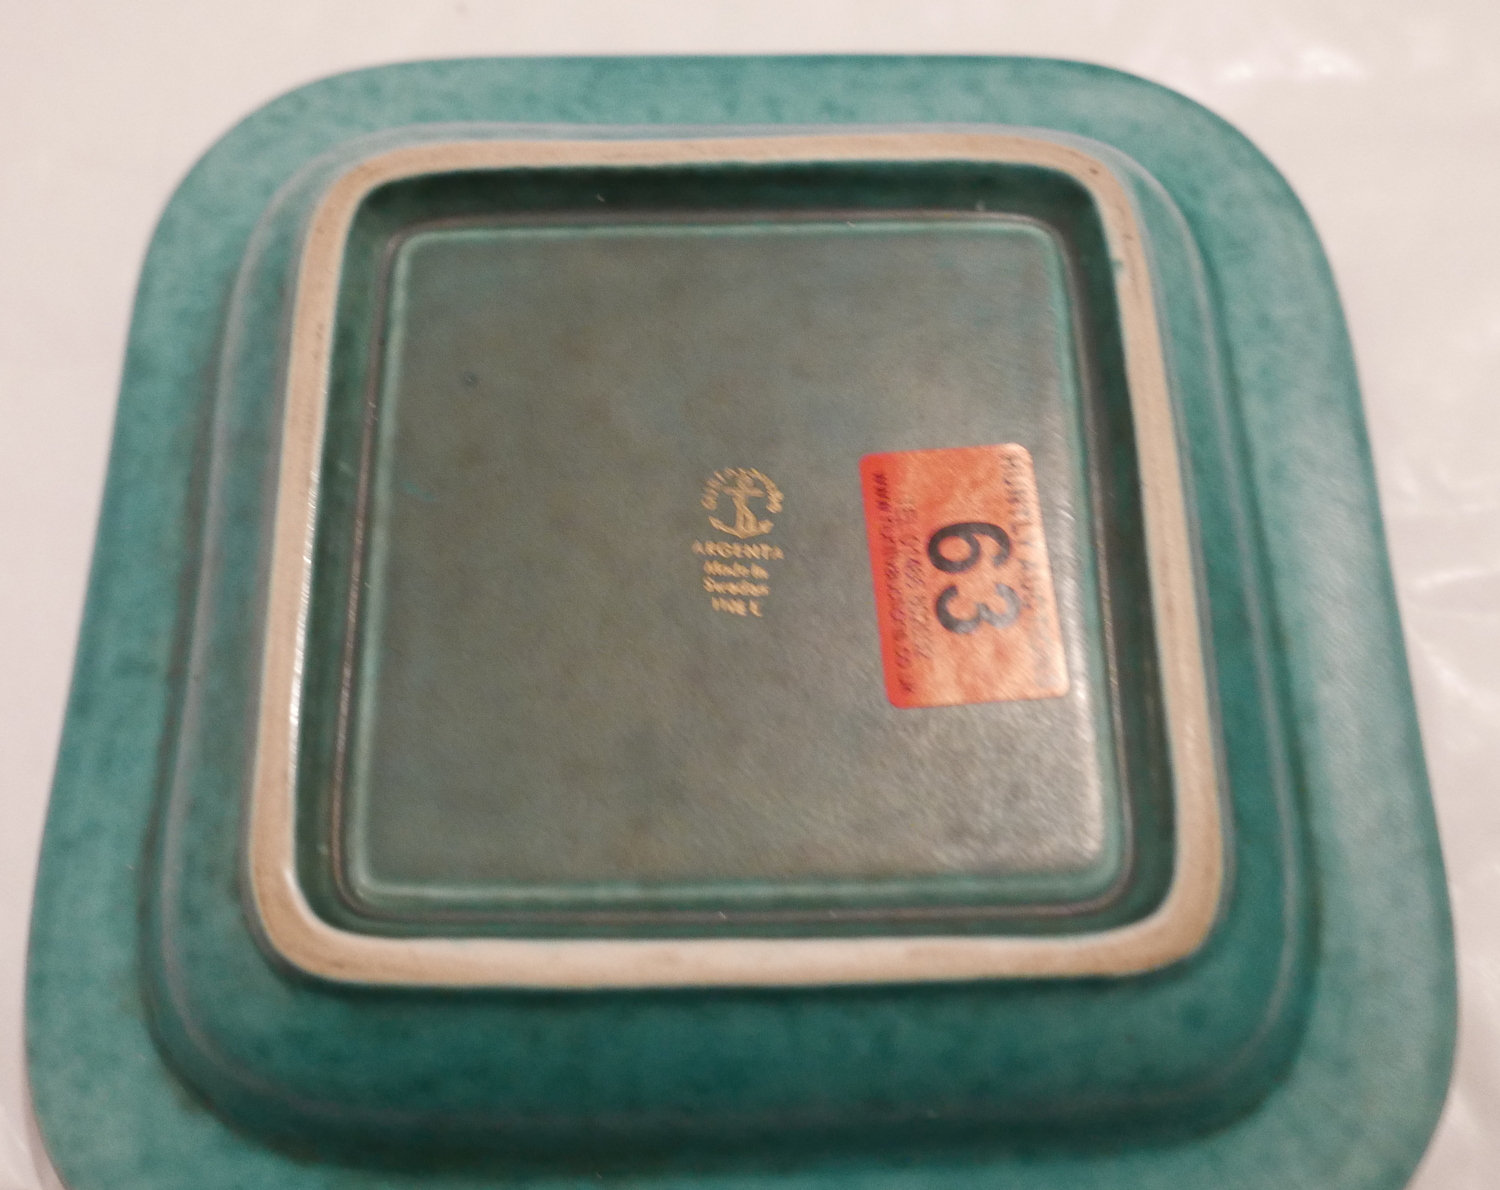 """Lot 63 - Large Gustavsberg Argenta Green Dish 8 1/4"""" (210mm) square with central silvered floral pattern."""